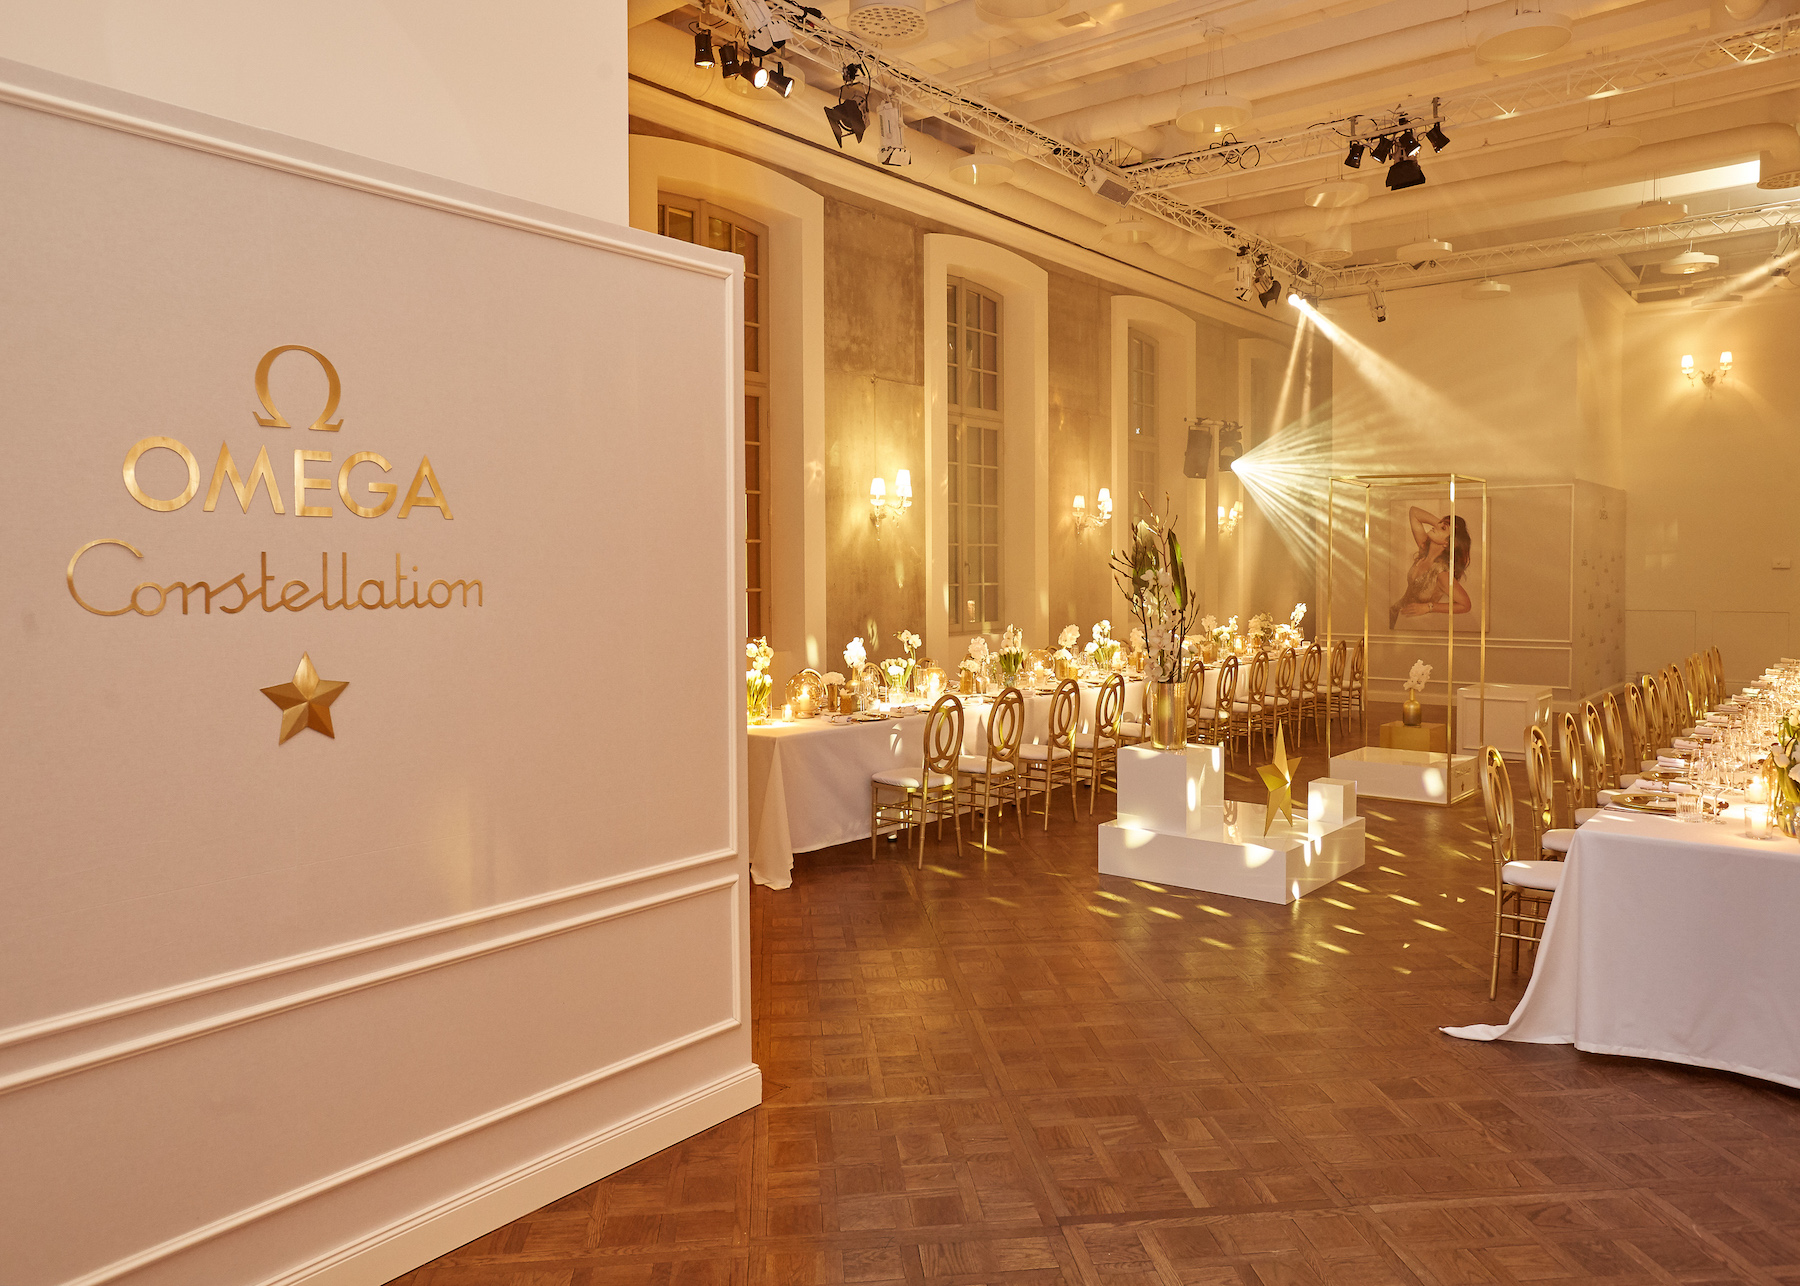 Omega Constellation Event